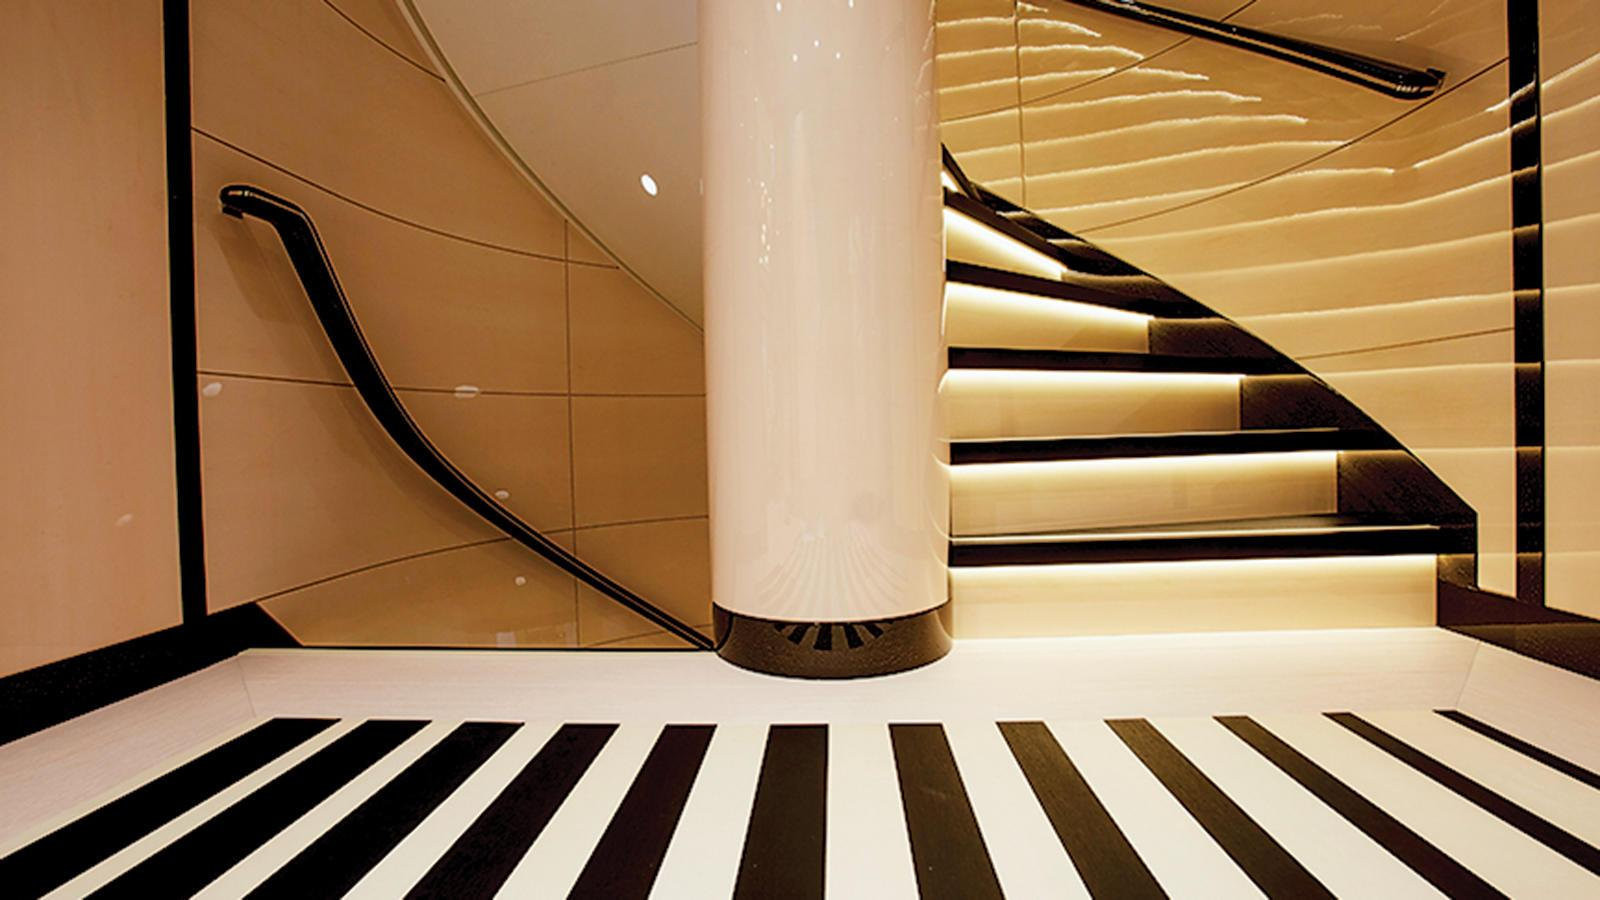 madame-kate-motor-yacht-amels-1999-62m-2015-staircase